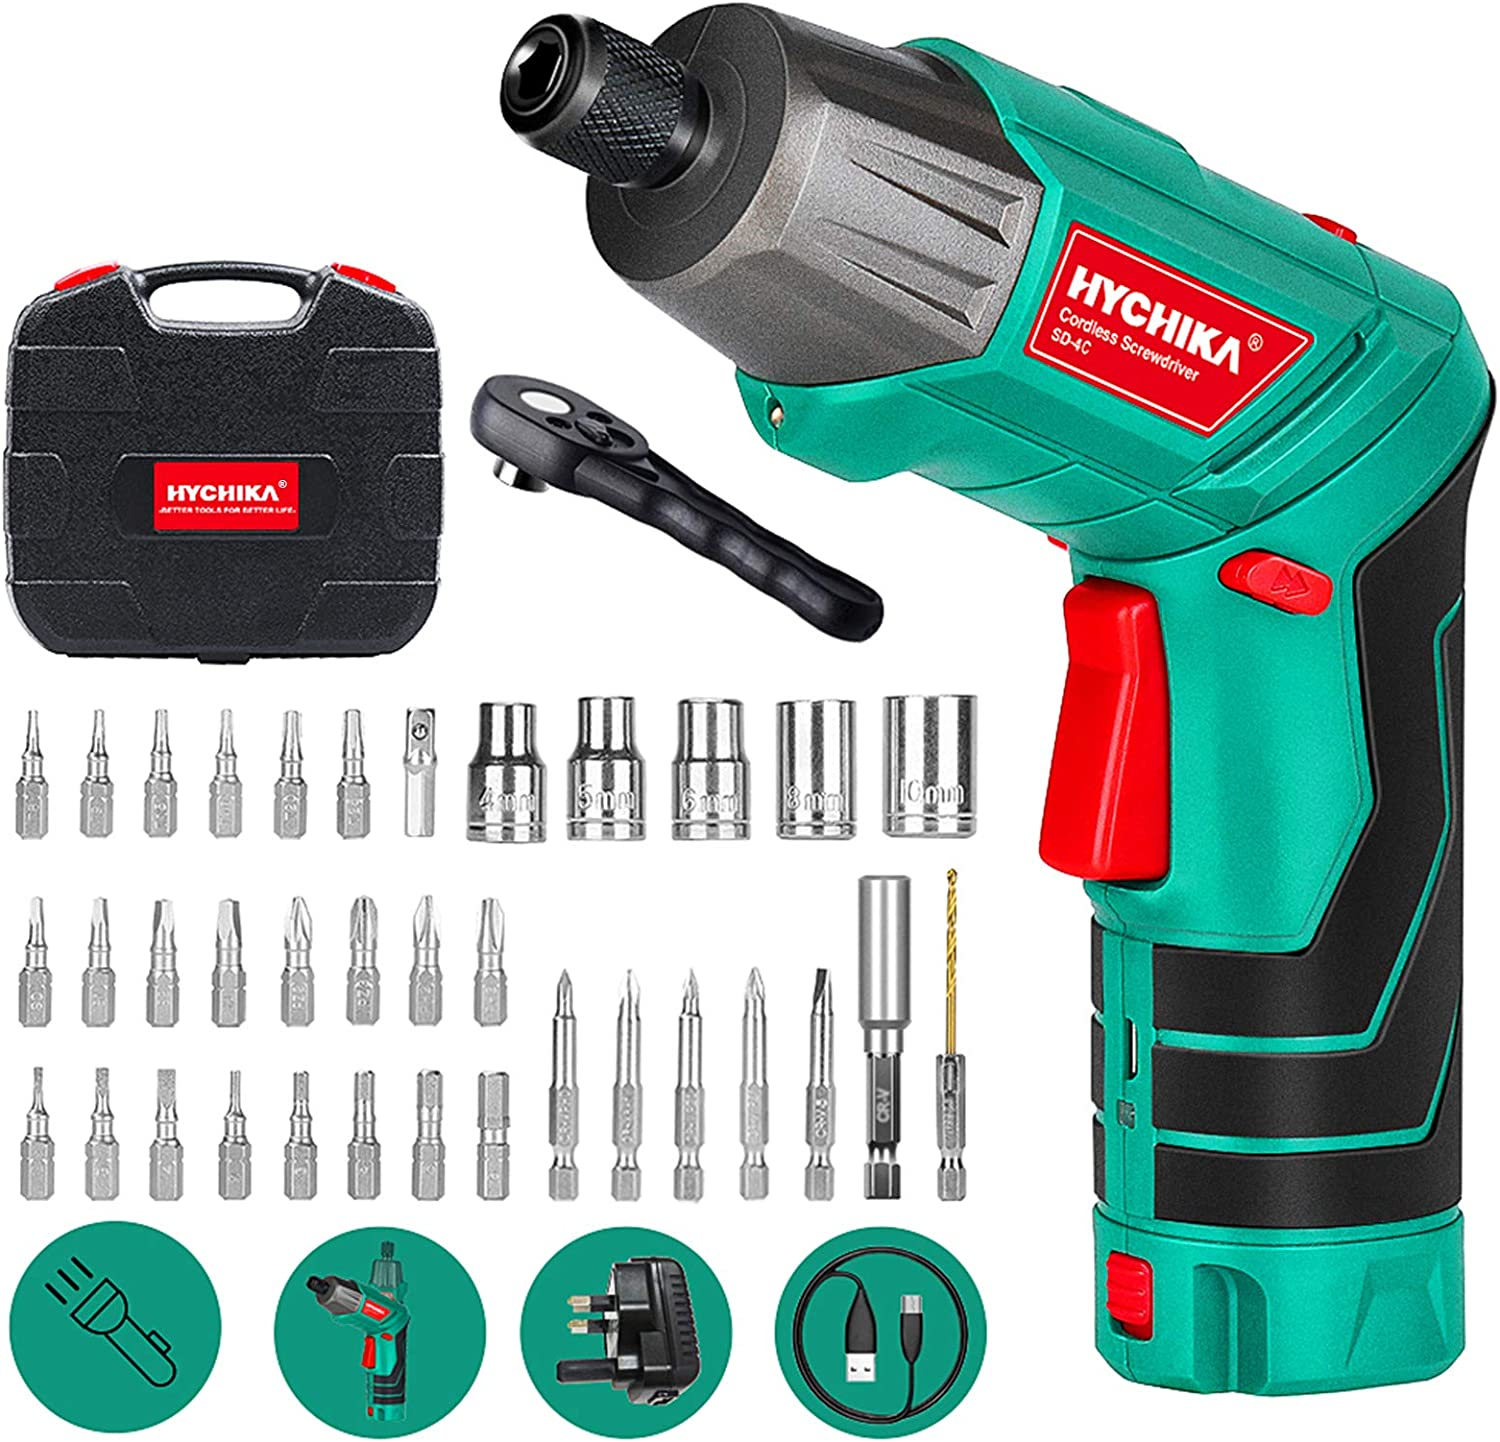 HYCHIKA Cordless Screwdriver with 36 Accessories WAS £25.99 NOW £18.20 w/code R6IKIROF @ Amazon